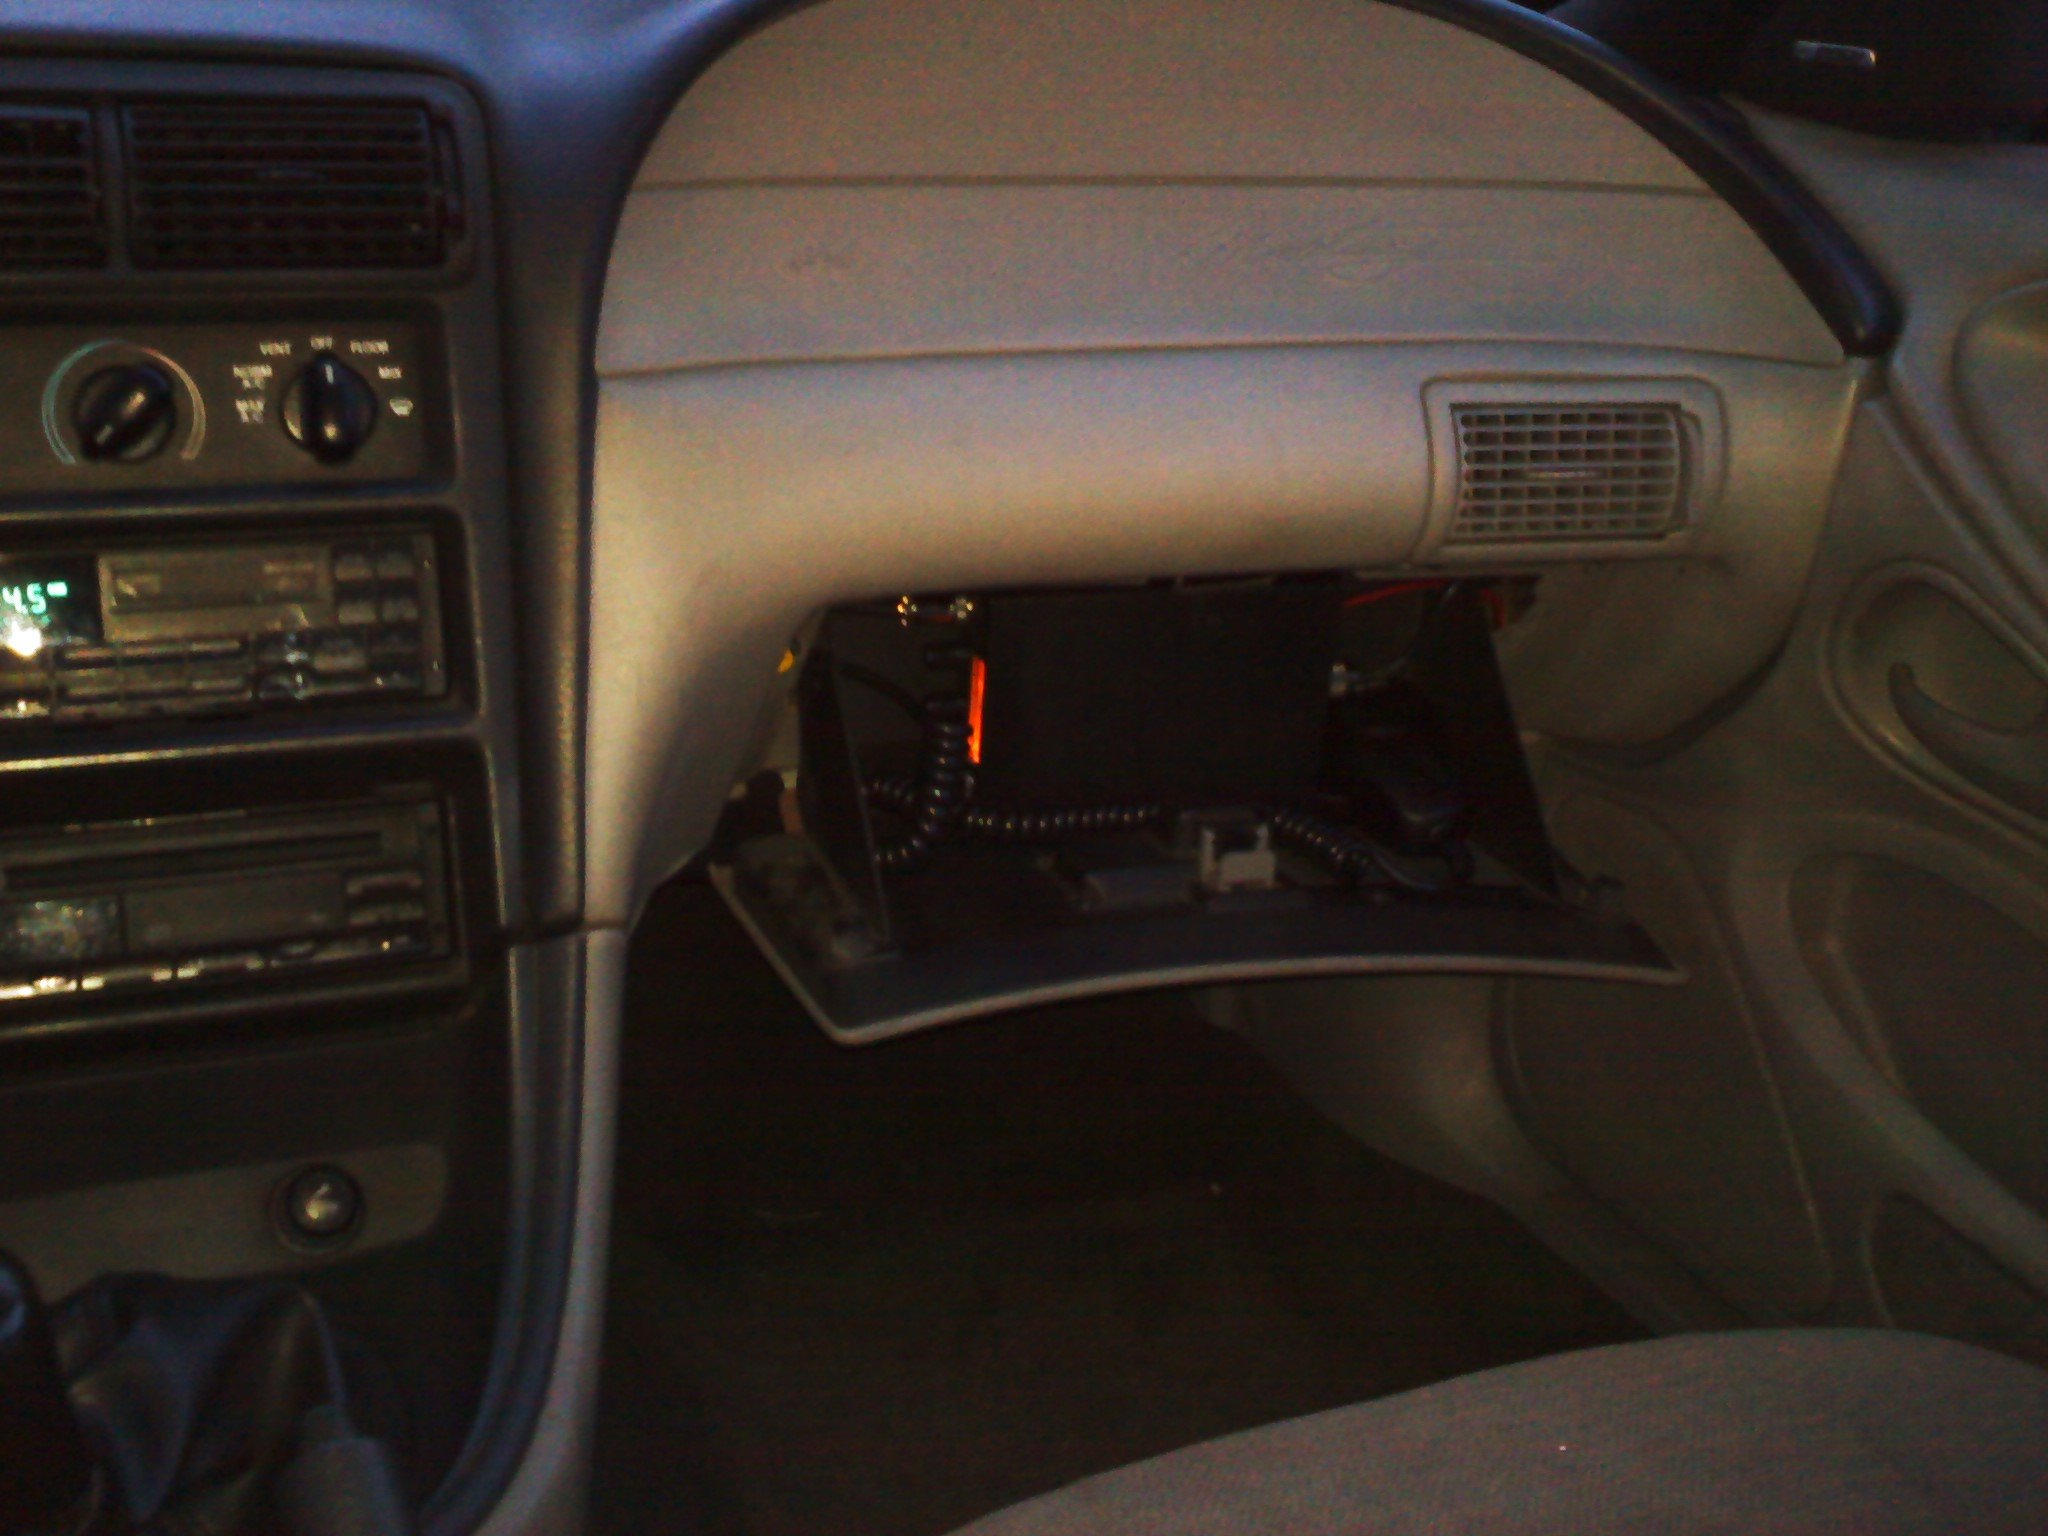 2000 Mustang CB Radio fuse box touble.-cb-location1.jpg